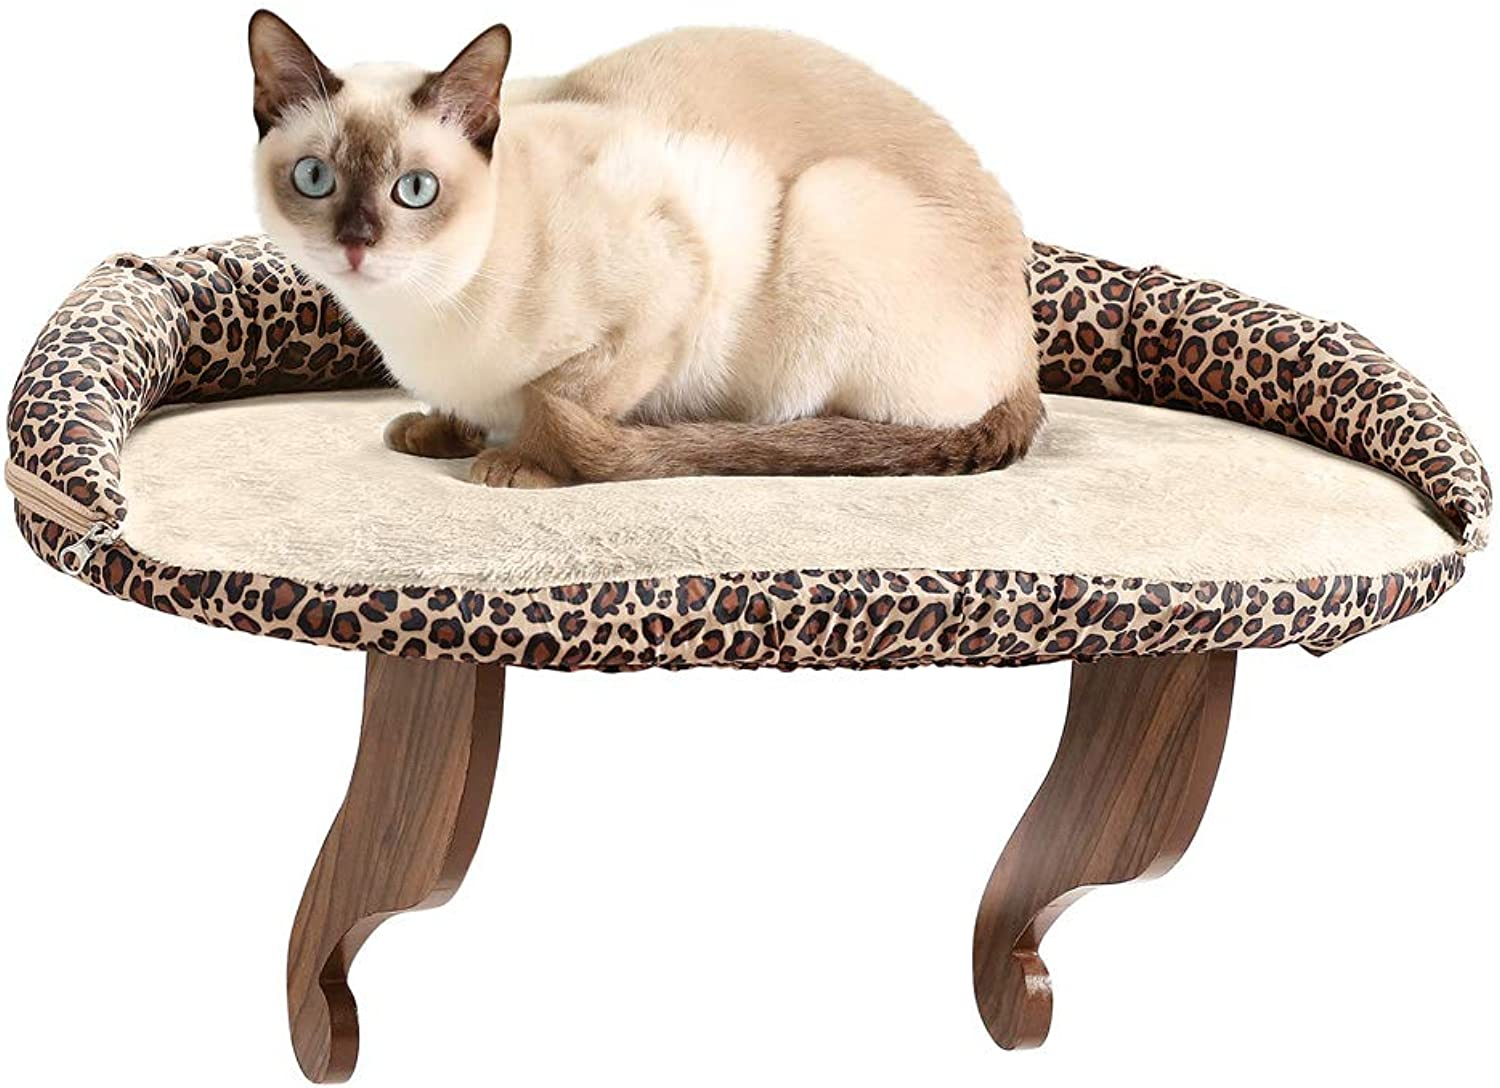 Luxury Leopard Print Wood Kitty Window Perch with Bolster